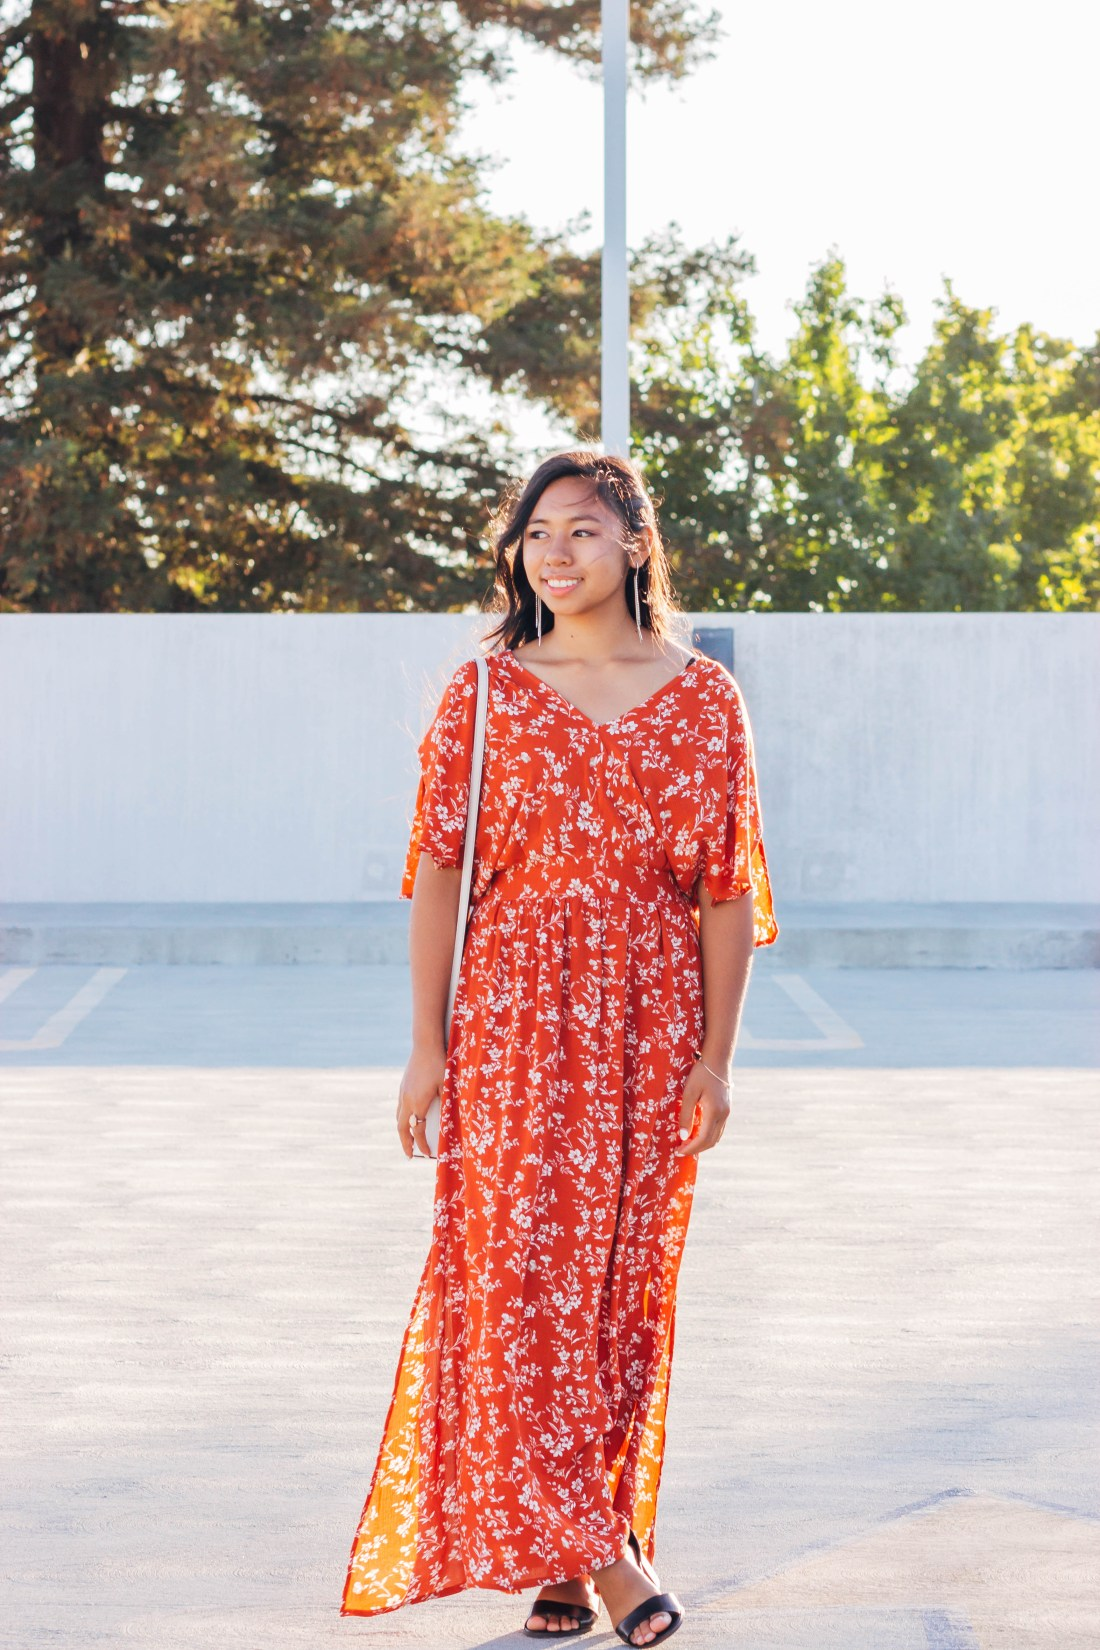 The perfect fall dress. Burnt orange, flower detail, tie back maxi dress with black heels.   In this post, Blaze Ann gives an honest life update, sharing where she's going to college, the last time she cried, etc.. on P31beauty.